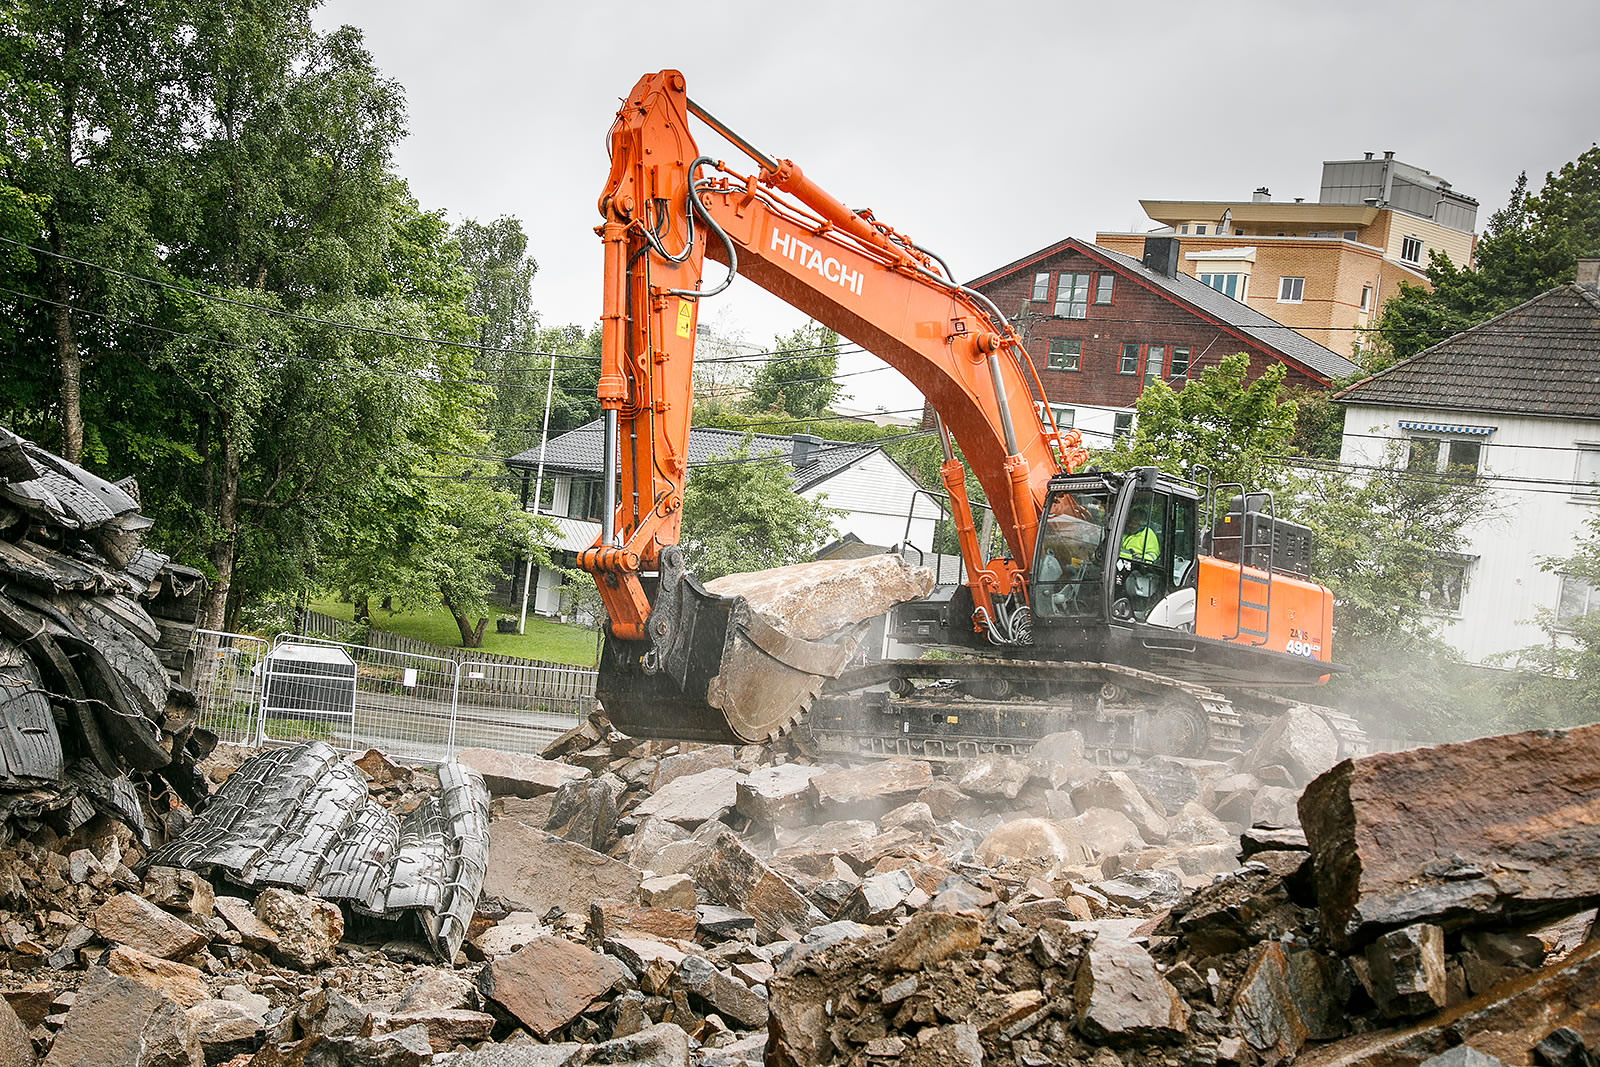 Hitachi ZX490LCH-6 excavator ideal for the job